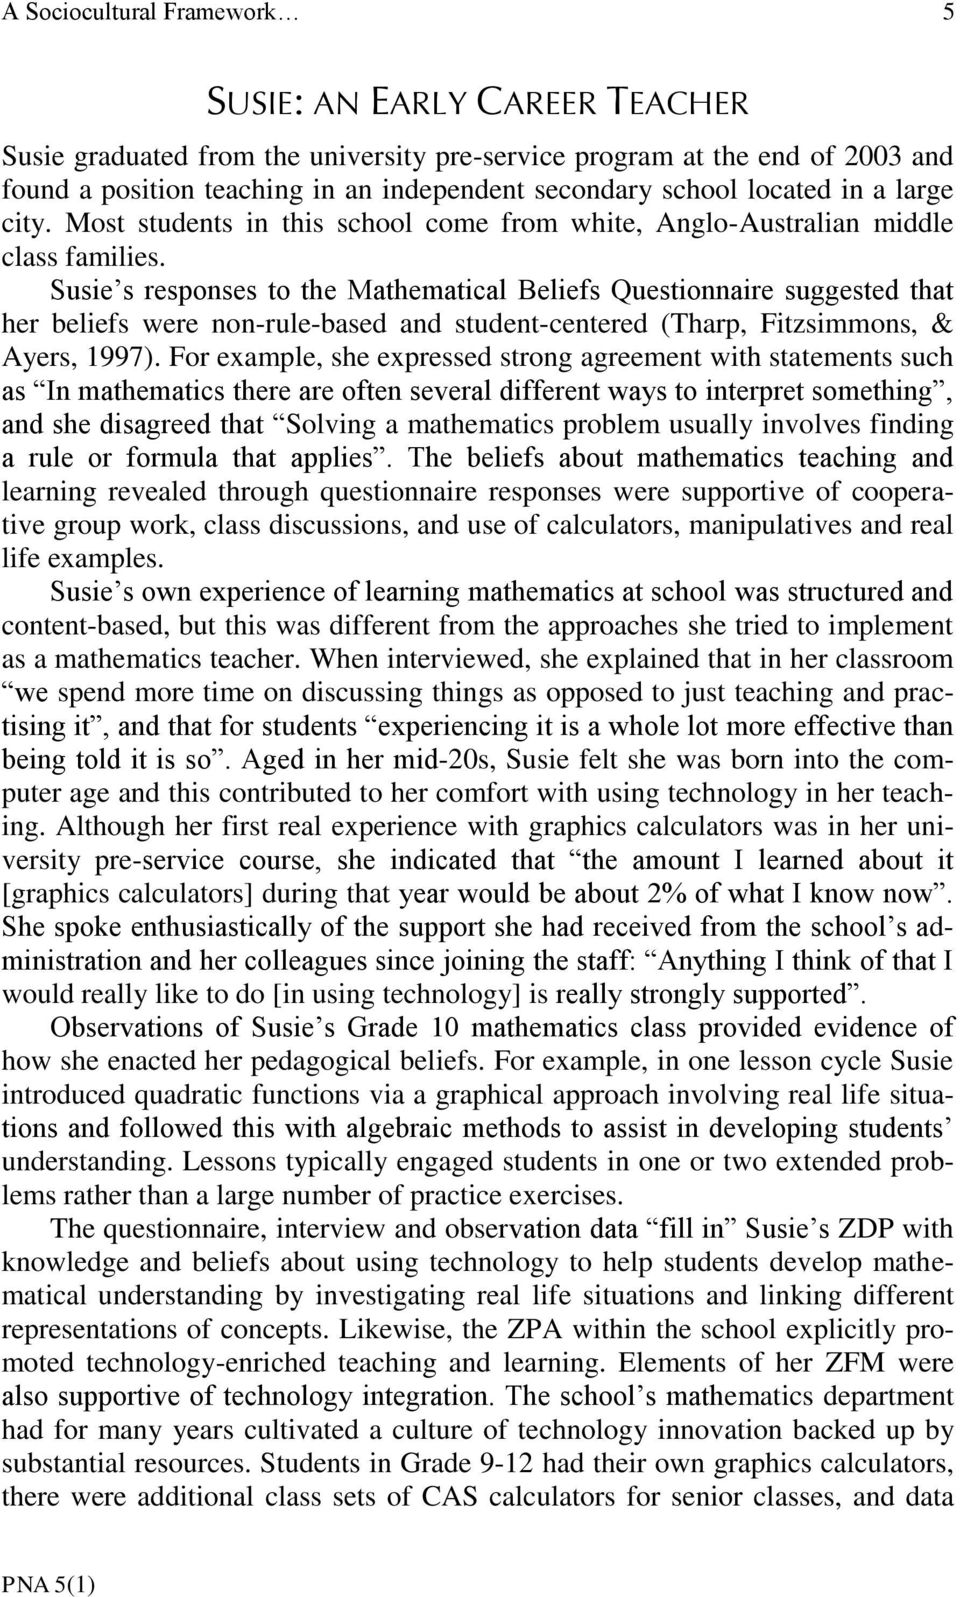 Susie s responses to the Mathematical Beliefs Questionnaire suggested that her beliefs were non-rule-based and student-centered (Tharp, Fitzsimmons, & Ayers, 1997).